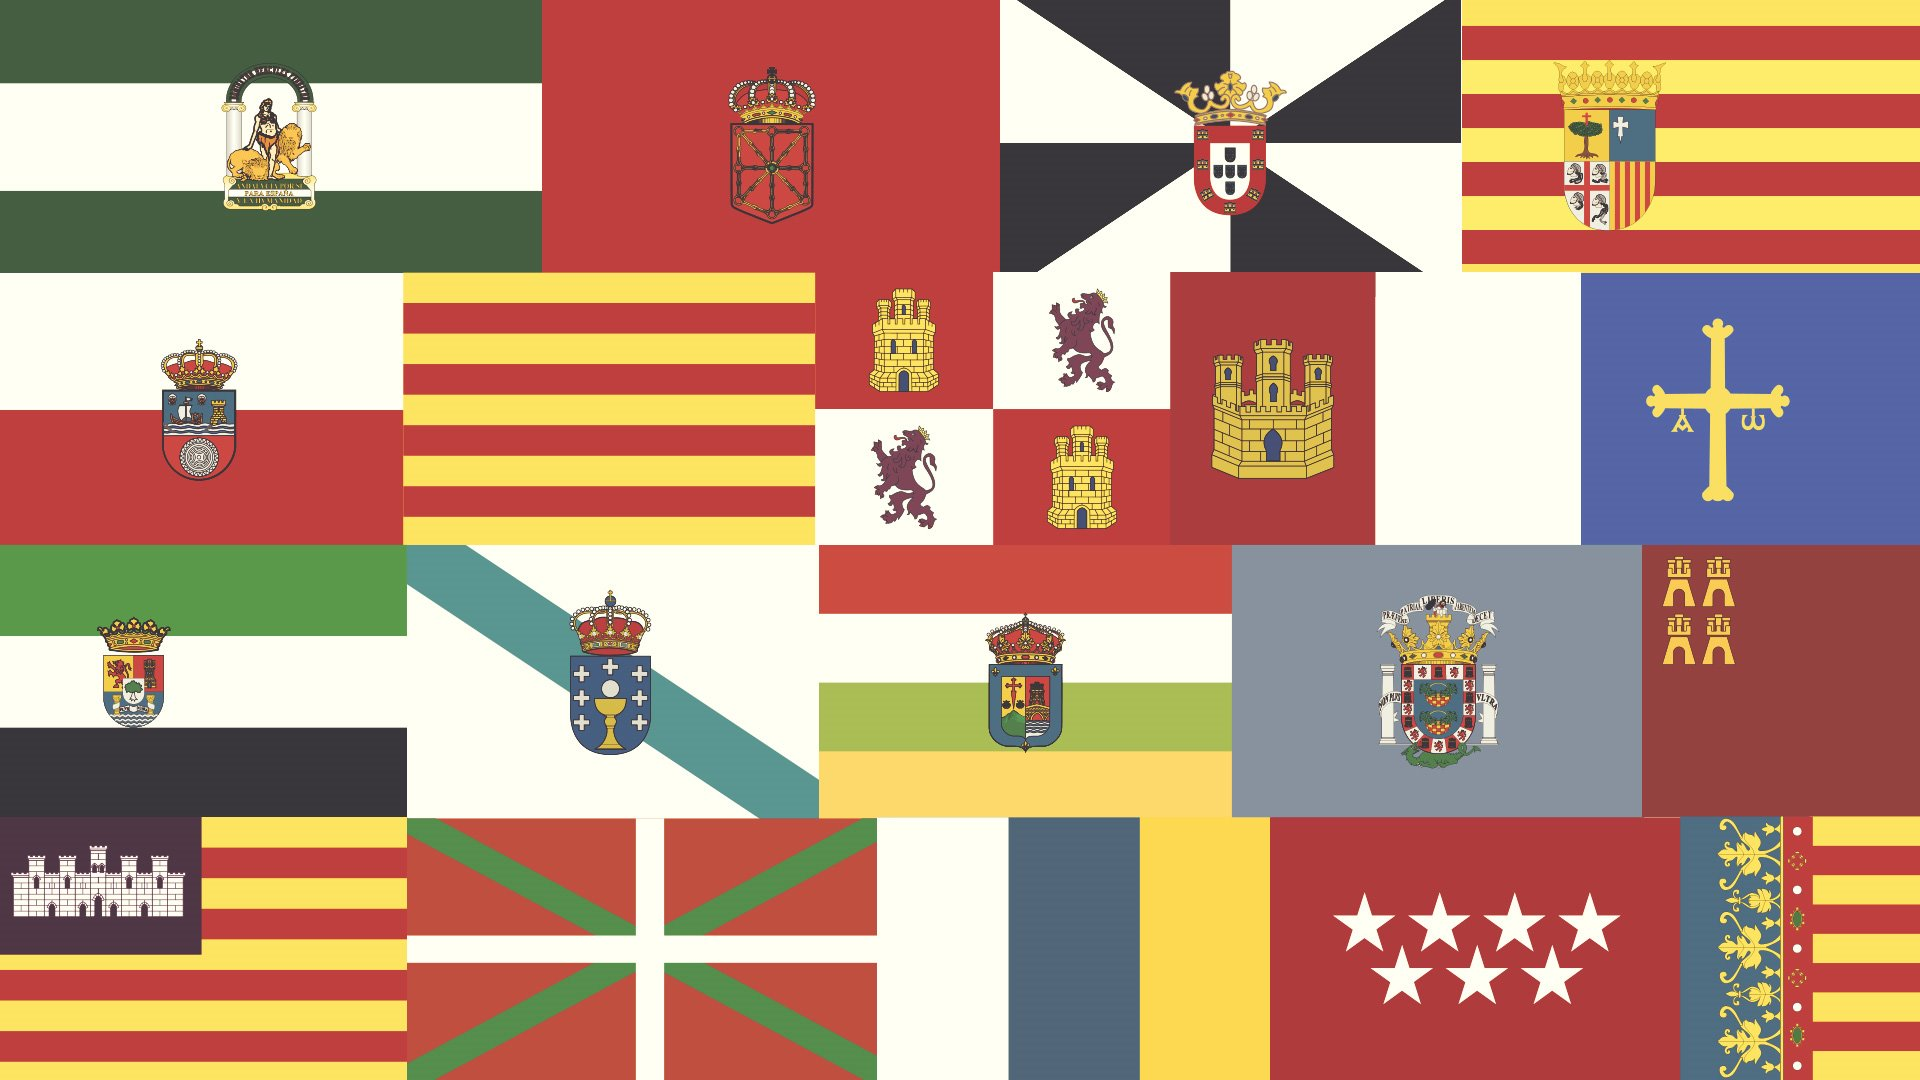 What does it mean to be Spanish today?